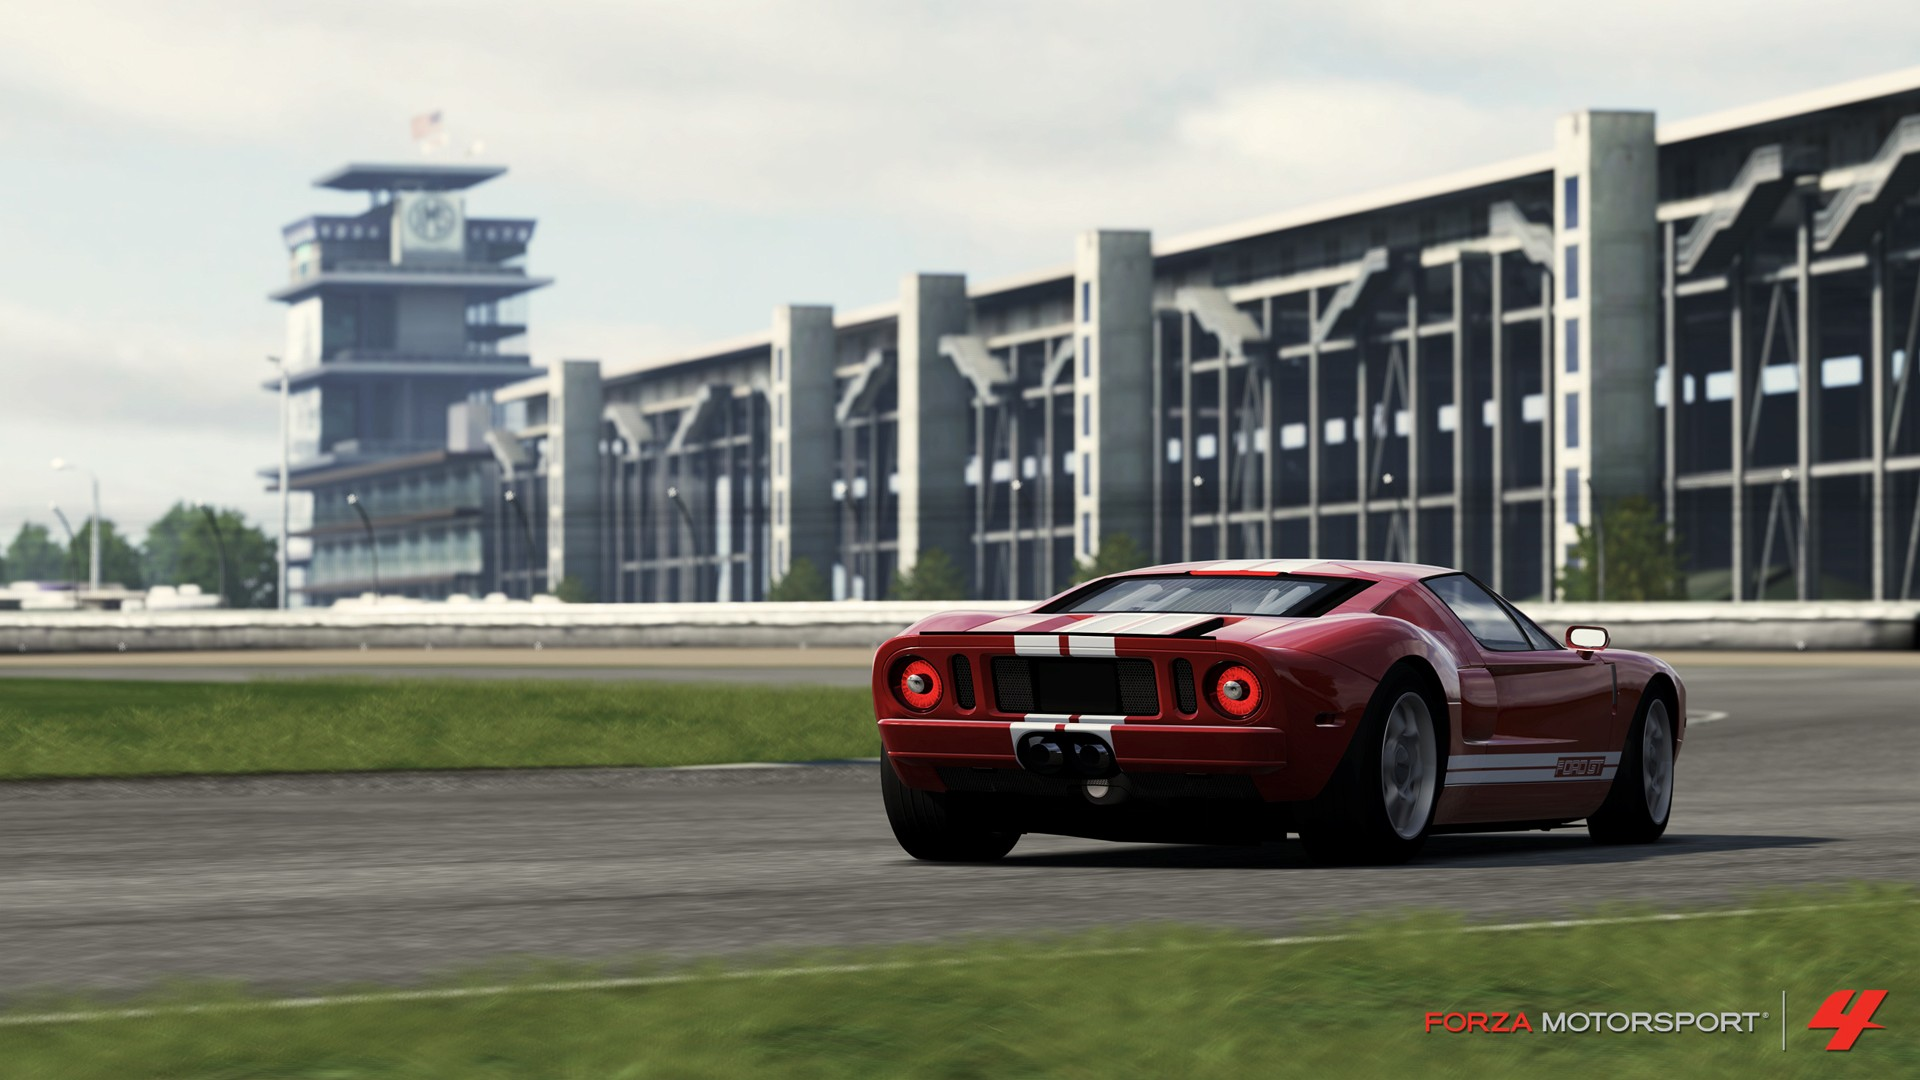 Ford GT Wallpaper 1920x1080 Ford GT Forza Motorsport 4 1920x1080